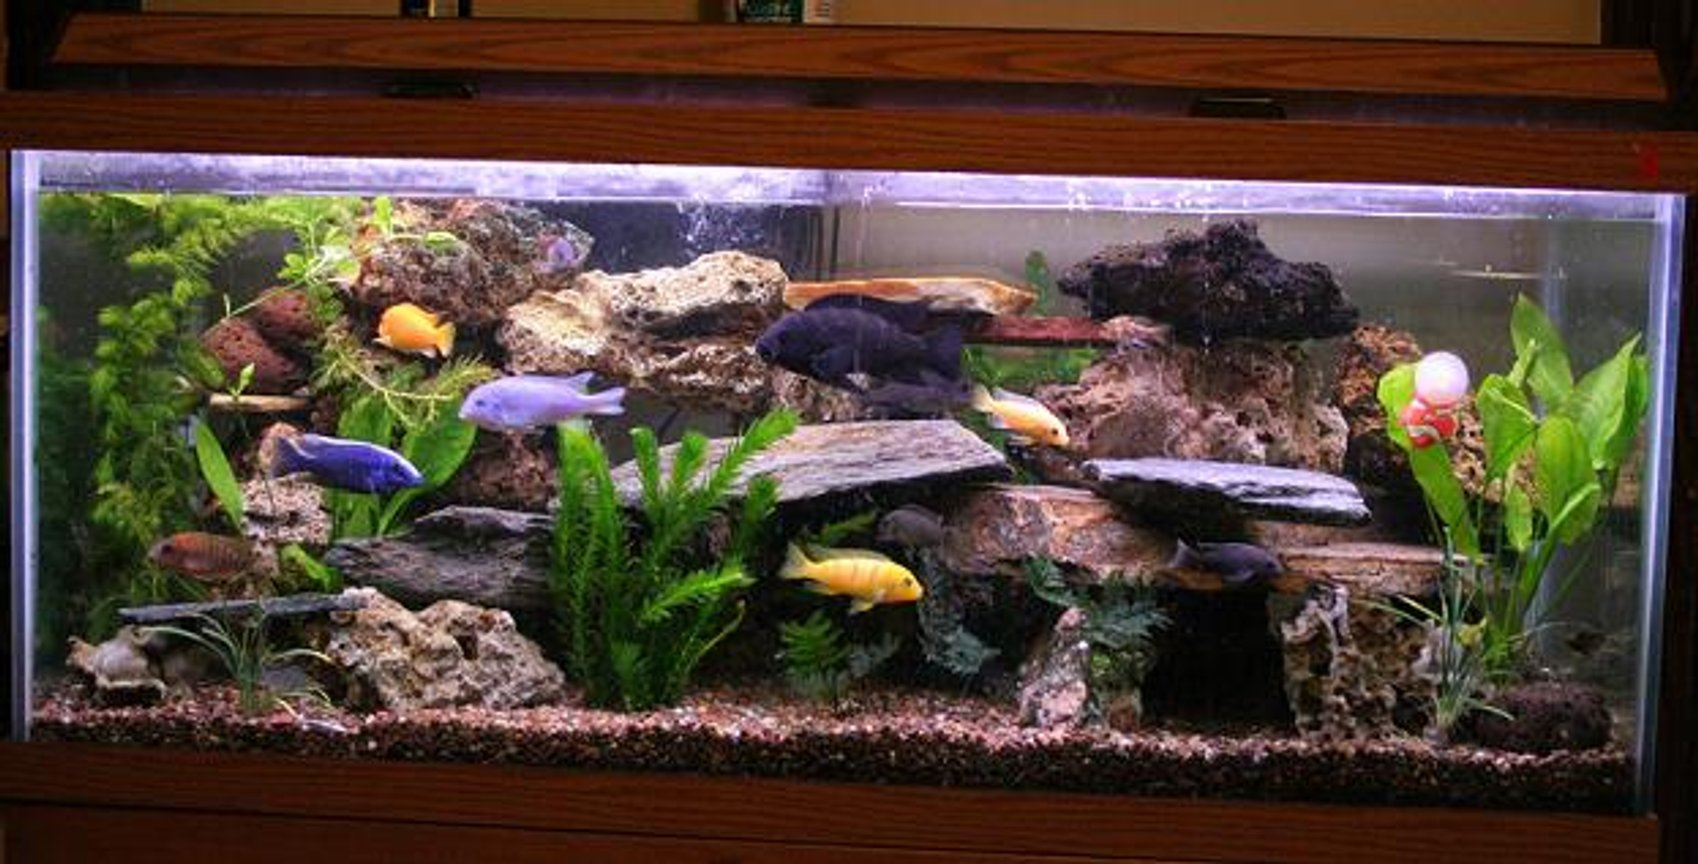 75 gallons freshwater fish tank (mostly fish and non-living decorations) - this is an updated picture of my previous one. i had to move to my new home, luckly everyone made it here with me.